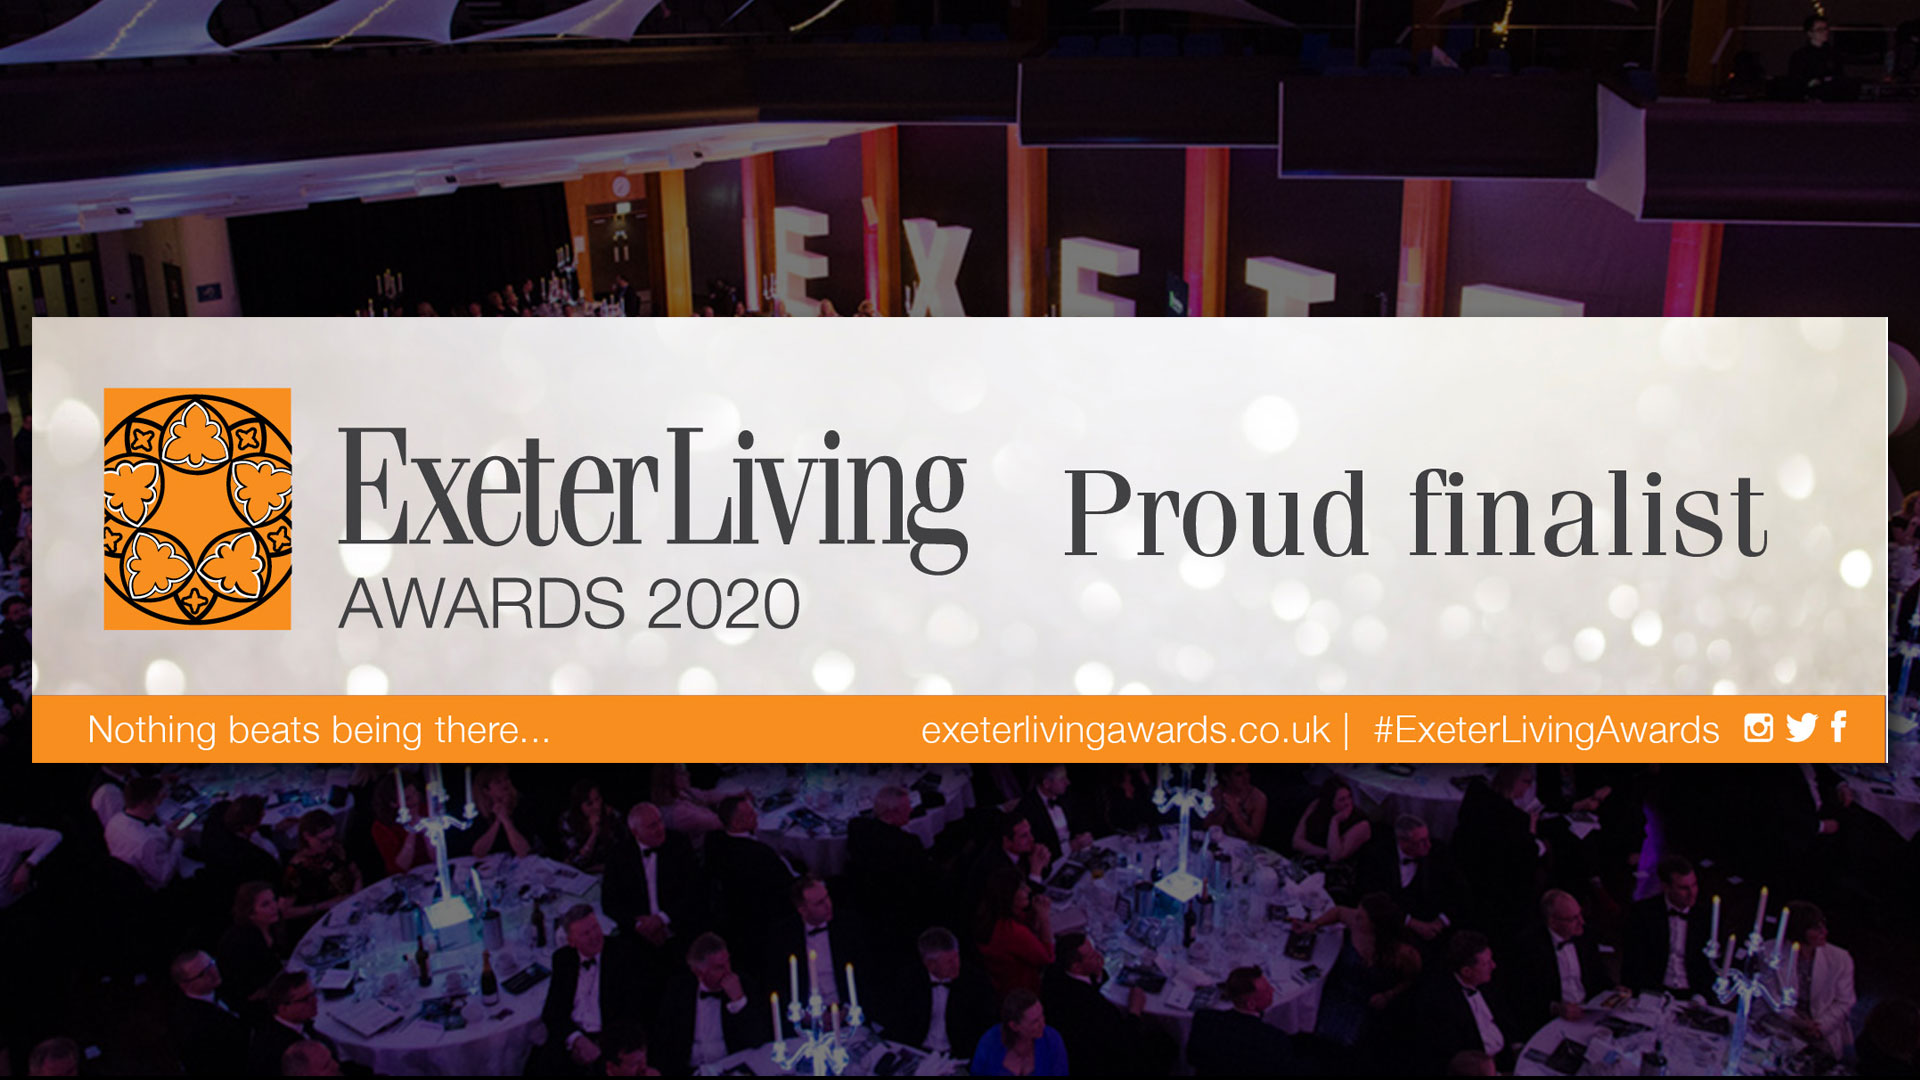 Exeter Living Awards Finalists Again!